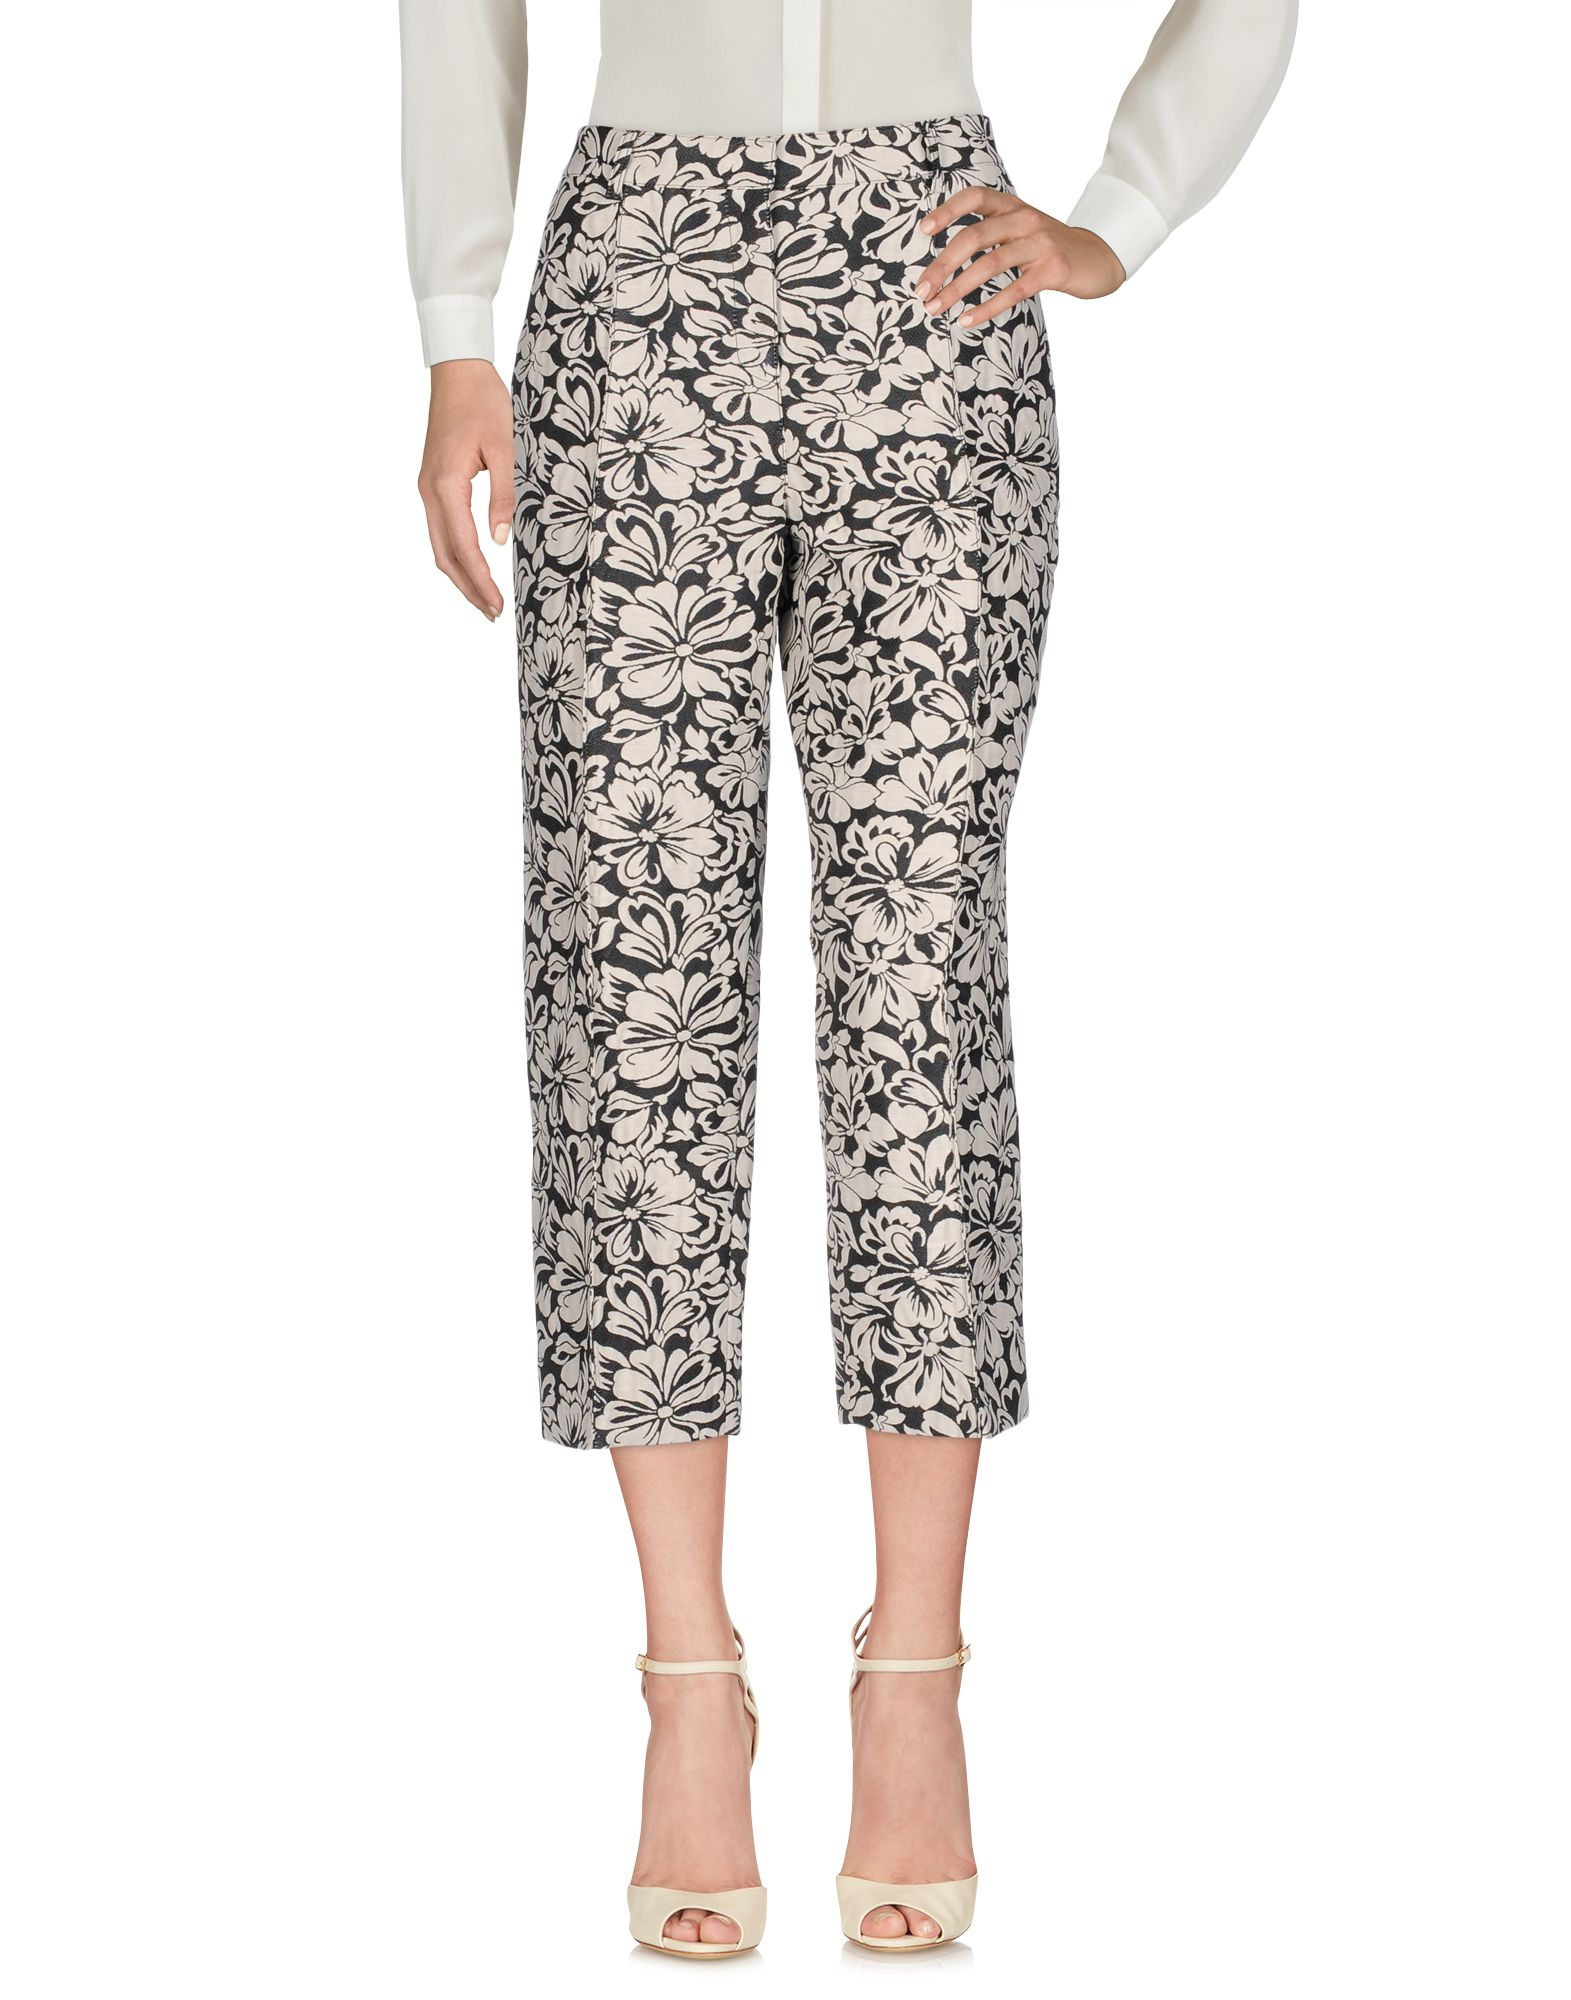 ATOS LOMBARDINI Cropped Pants & Culottes in Black